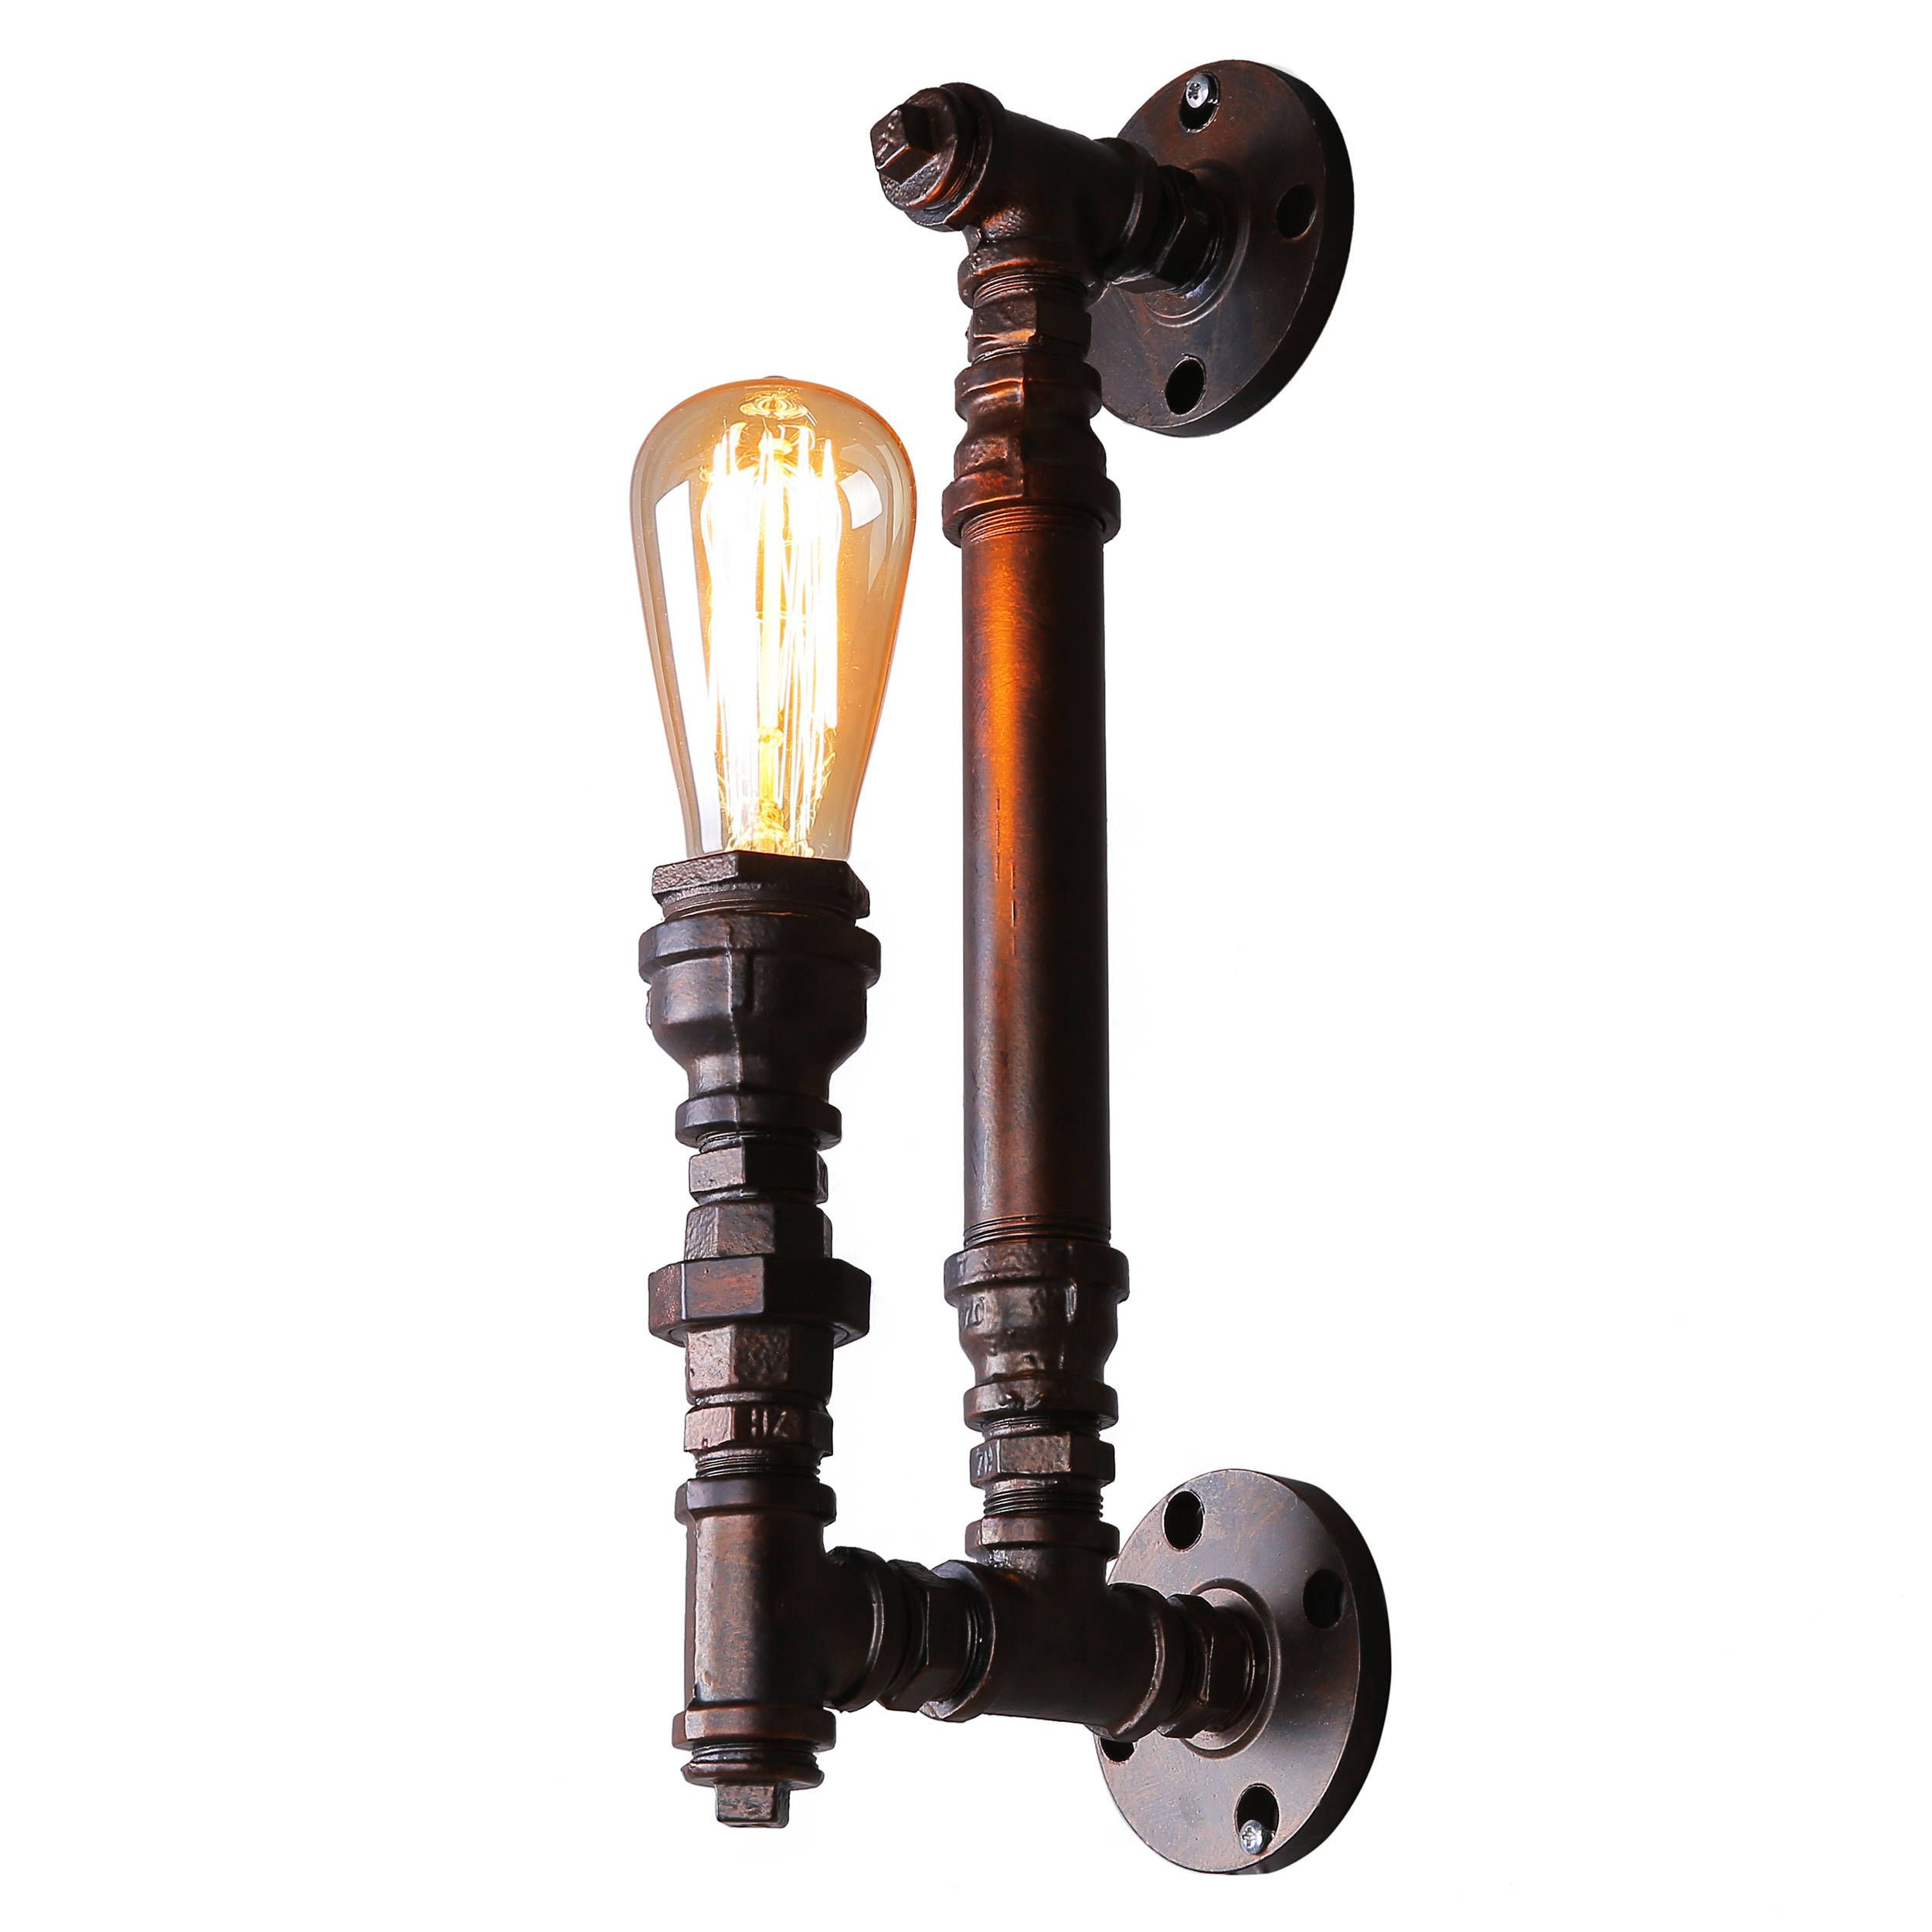 wall picture gold sconces vintage bathroom sconce uk fascinating antique lights pewterght bathroomghting industrial fixtures ukghts with modern for traditional lighting porcelain